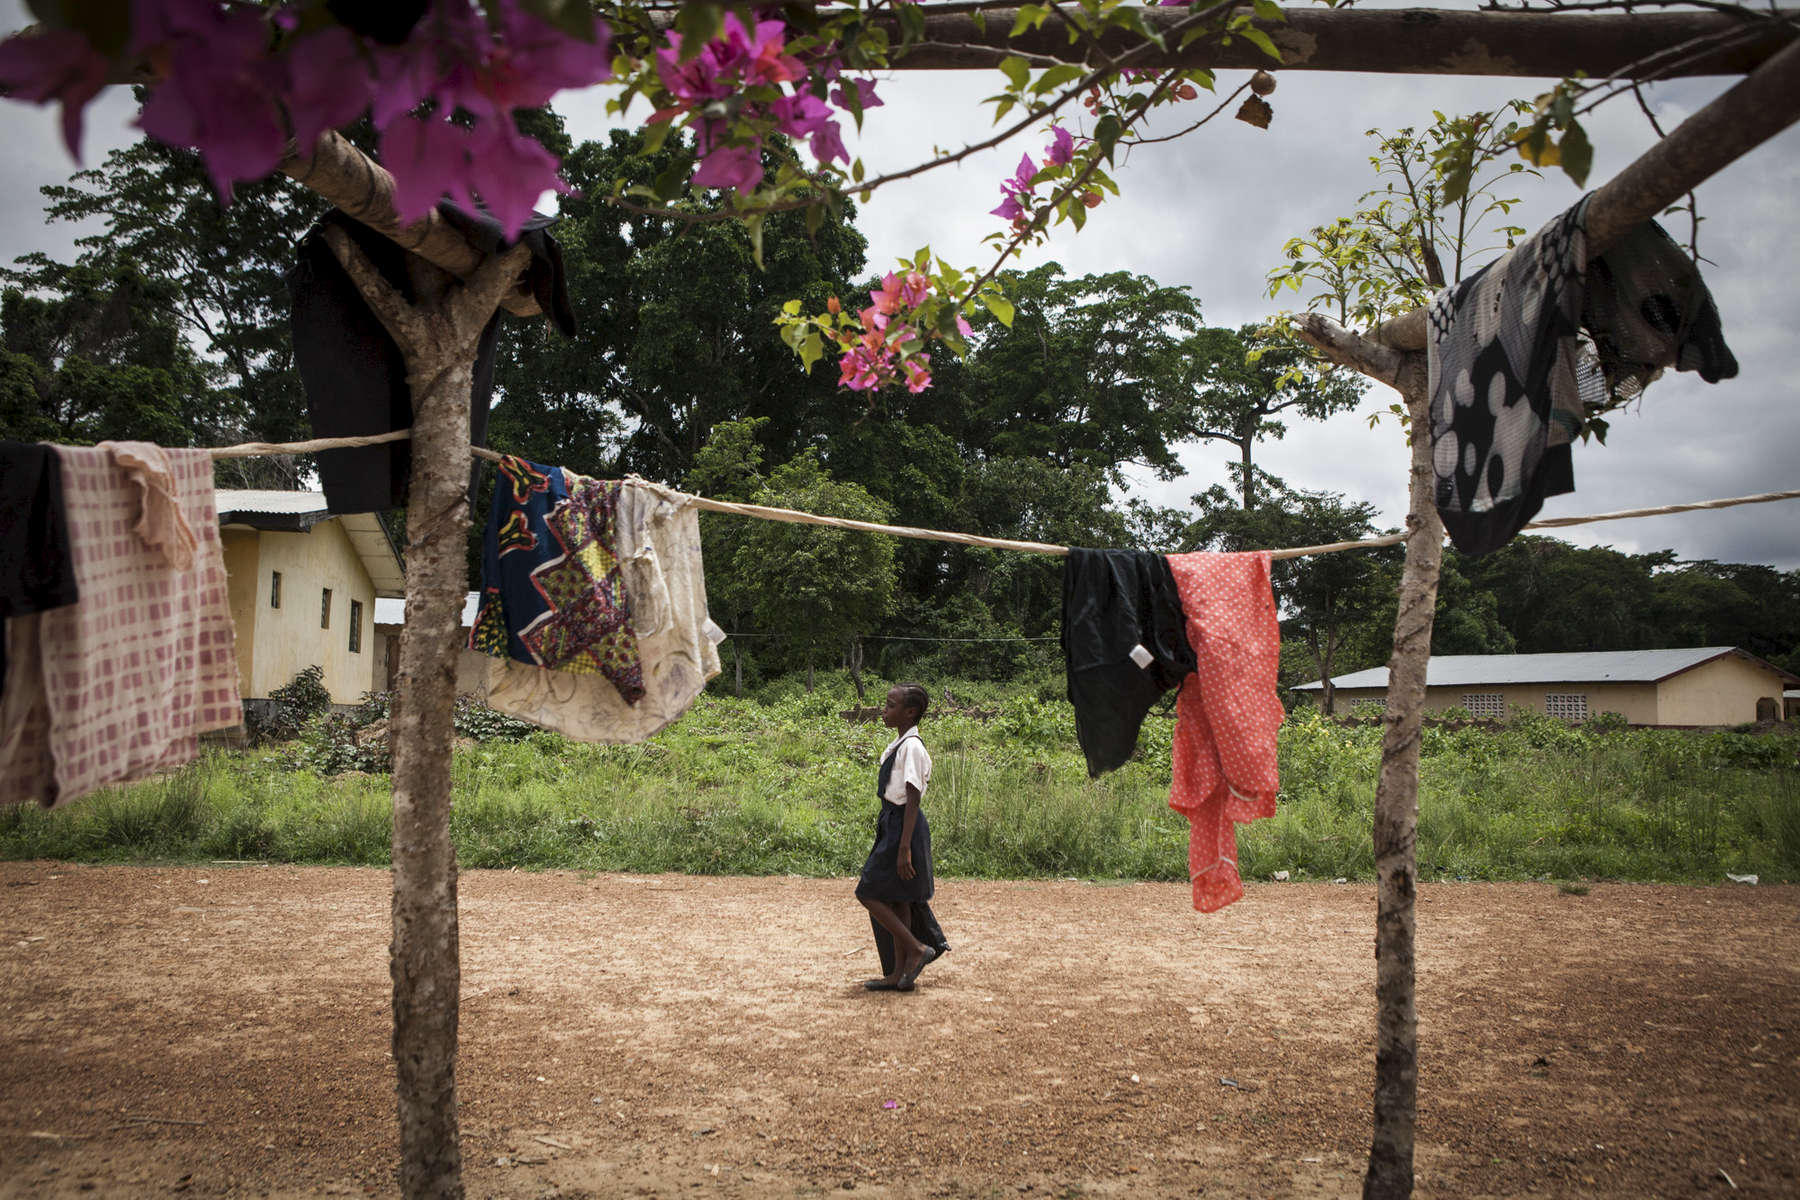 A student walks home after school from the Passama Public School in Gbarnga, Bong County, Liberia